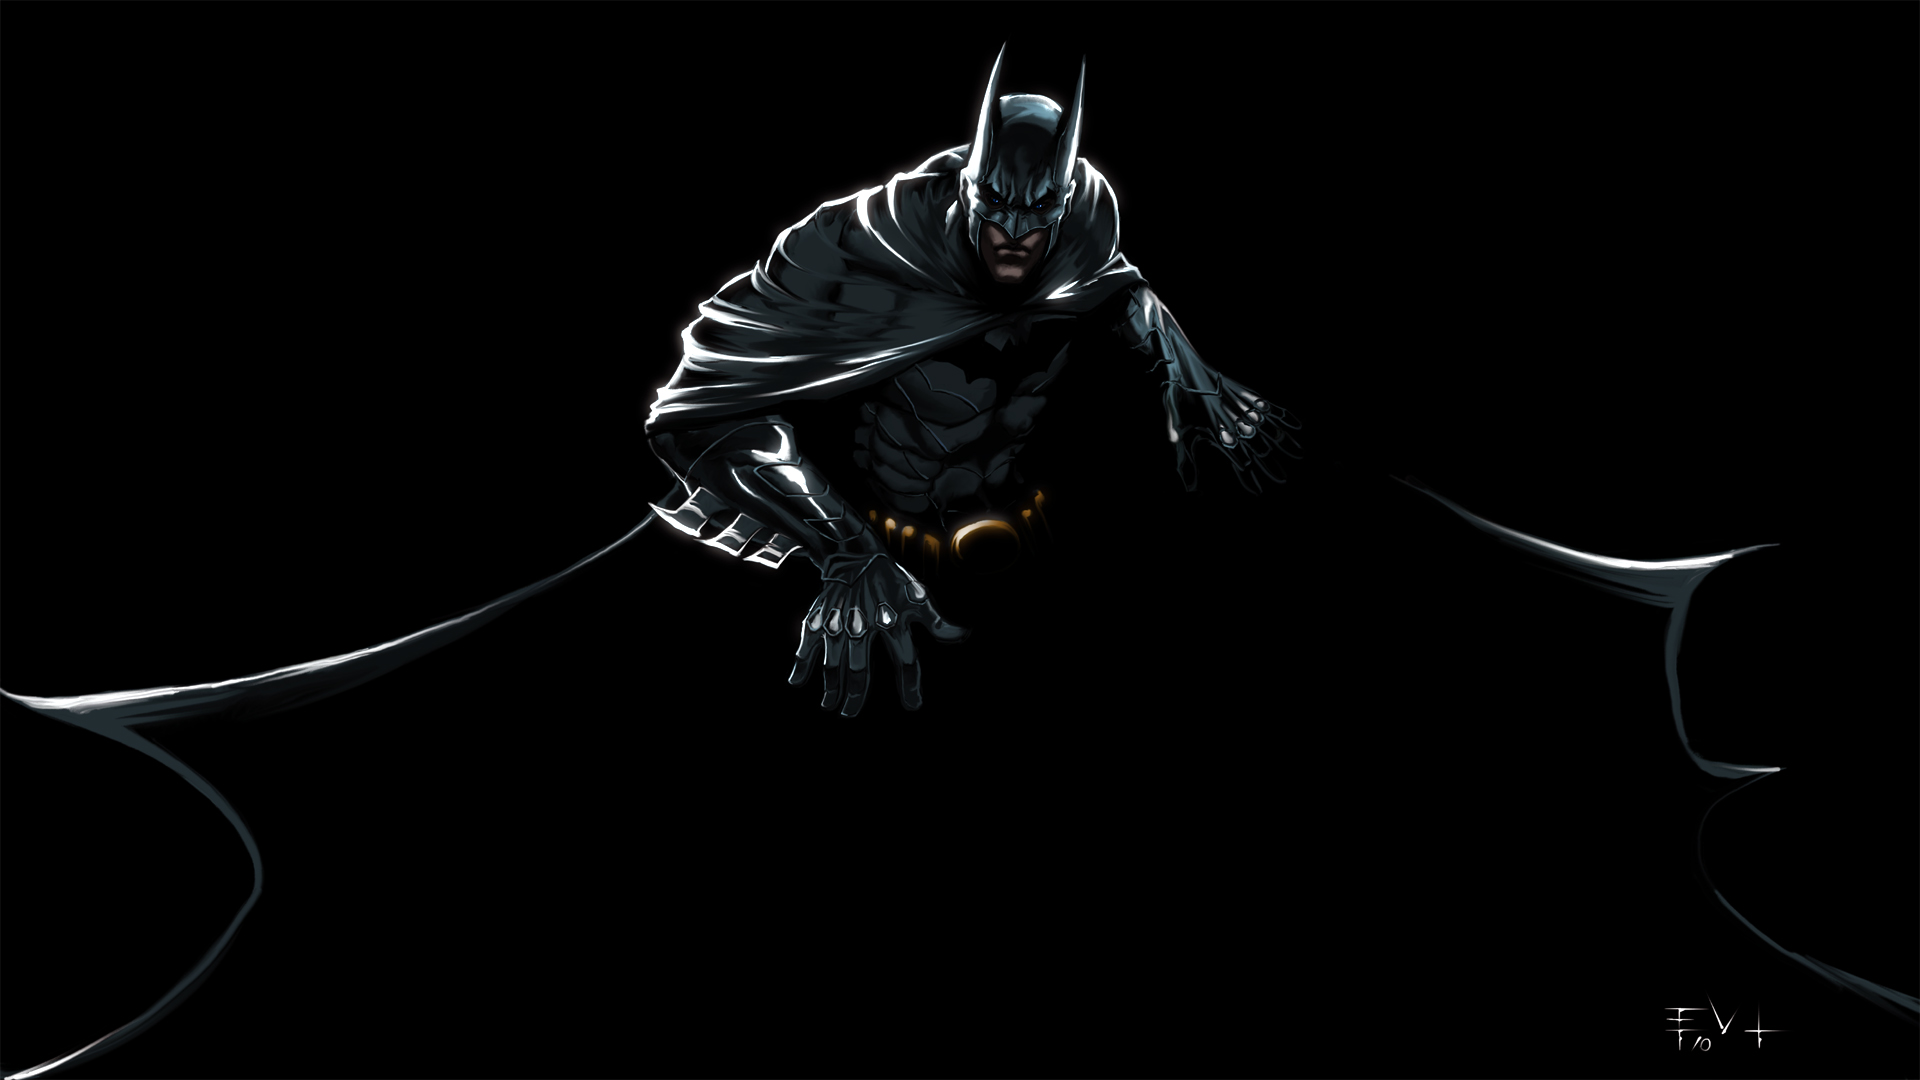 Papel De Parede Batman Realista Wallpaper Para Download No Celular